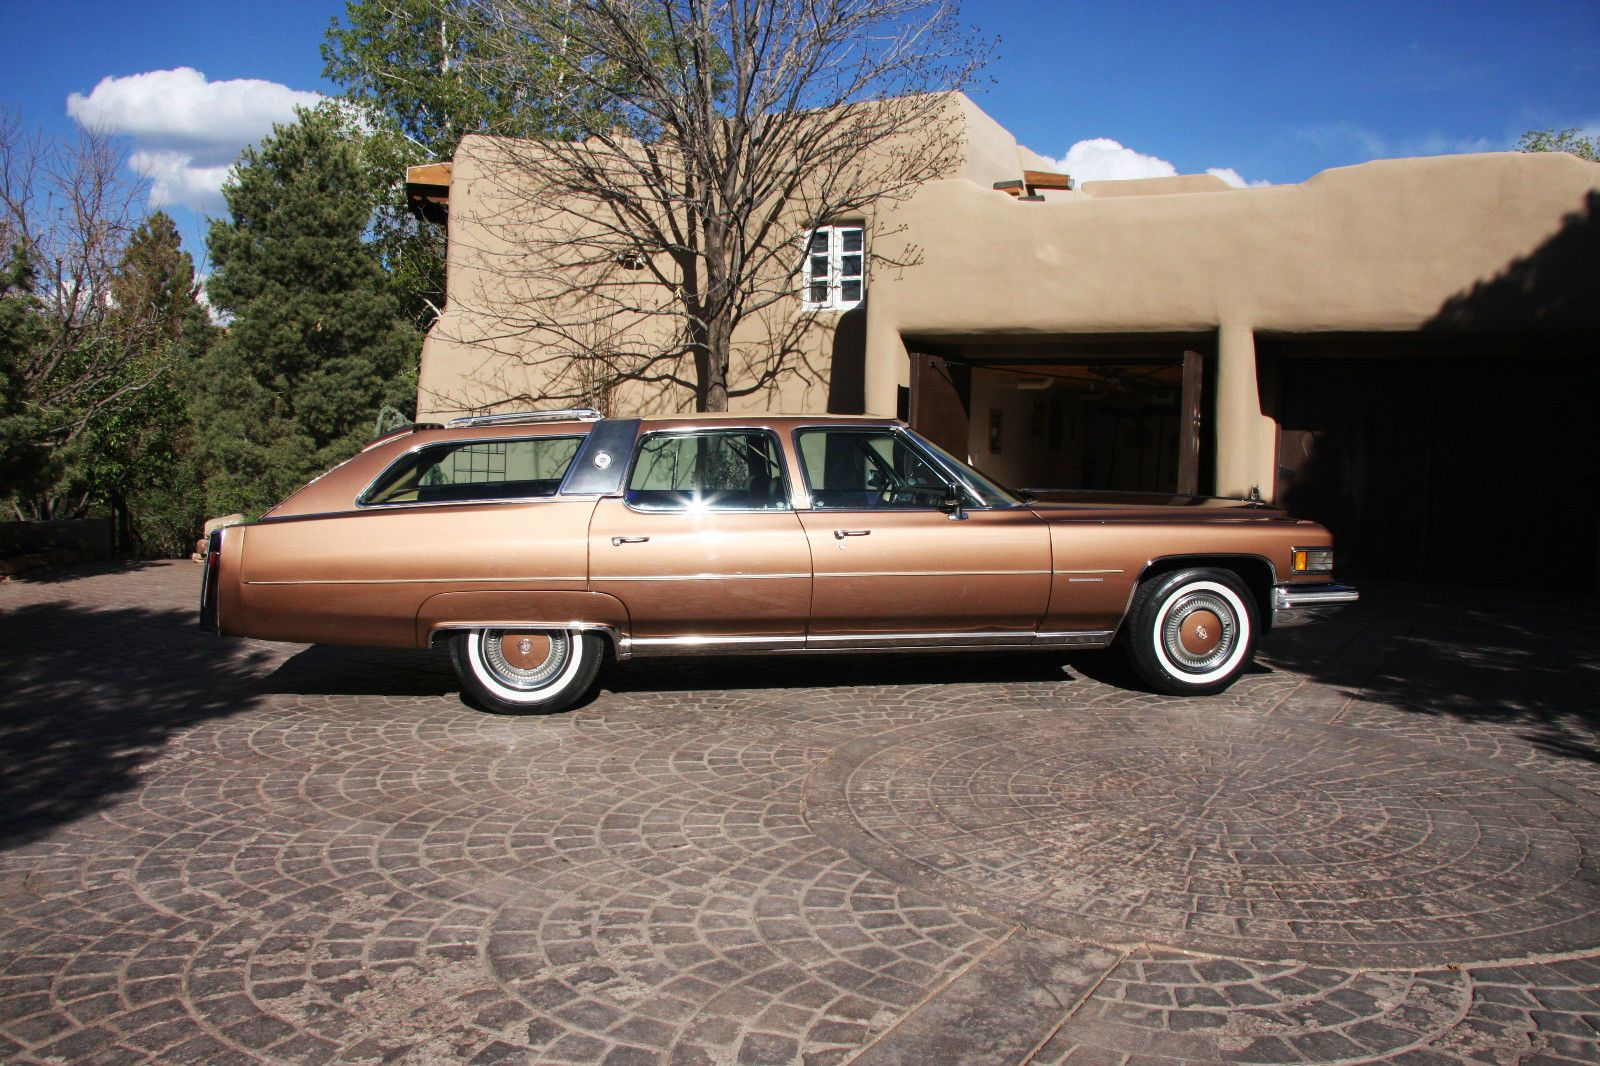 1975 cadillac station wagon maintenance of old vehicles the material for new cogs casters gears pads could be cast polyamide which i cast polyamide can